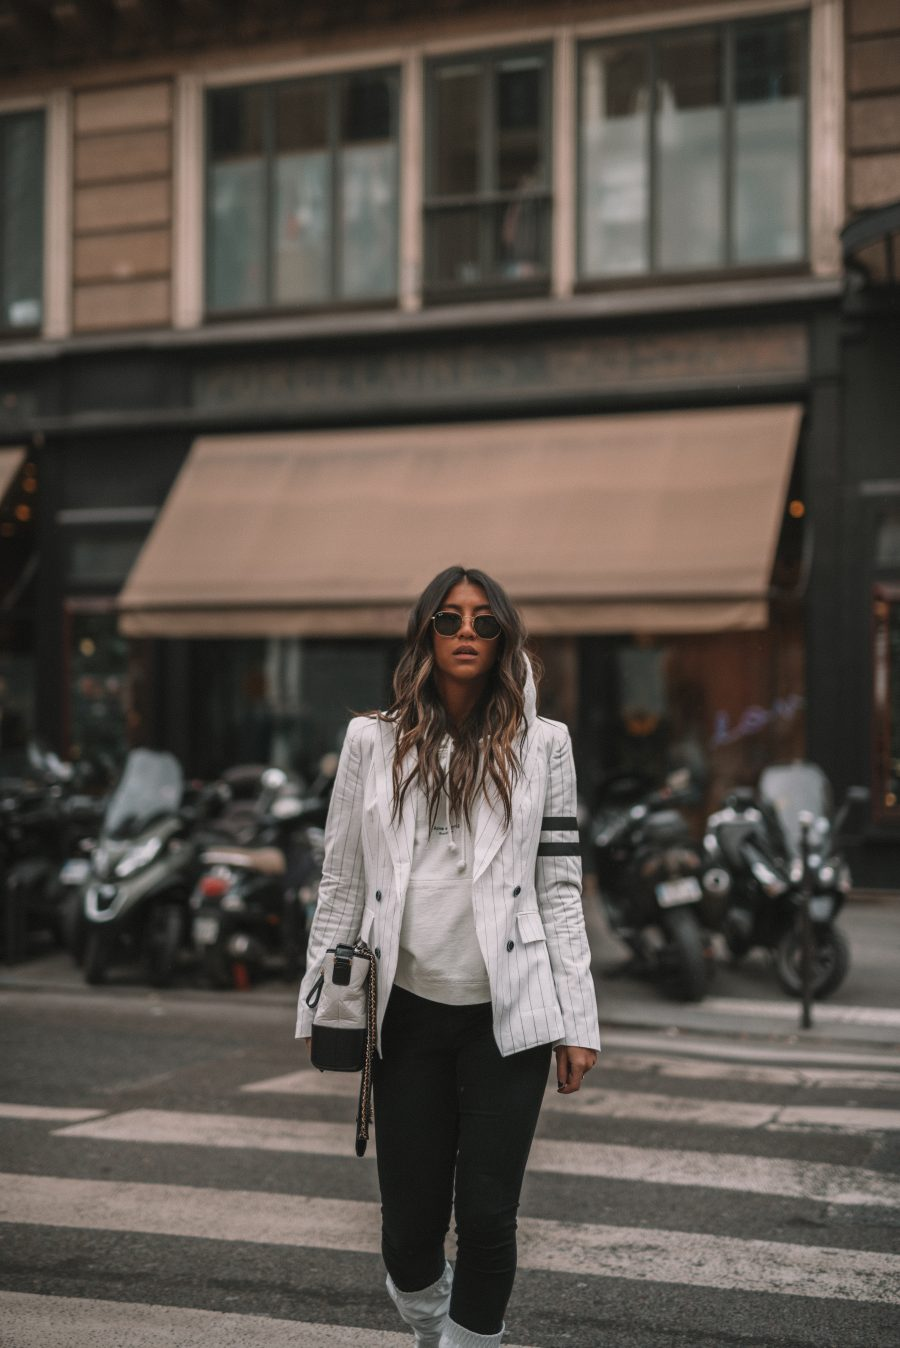 sosken blazer white stripe gabrielle chanel bag acne ice white hoodie sigerson morrison white boots igk texture hair spray texture waves mane addicts kayla seah not your standard paris fashion week streetstyle fall winter blogger cafe